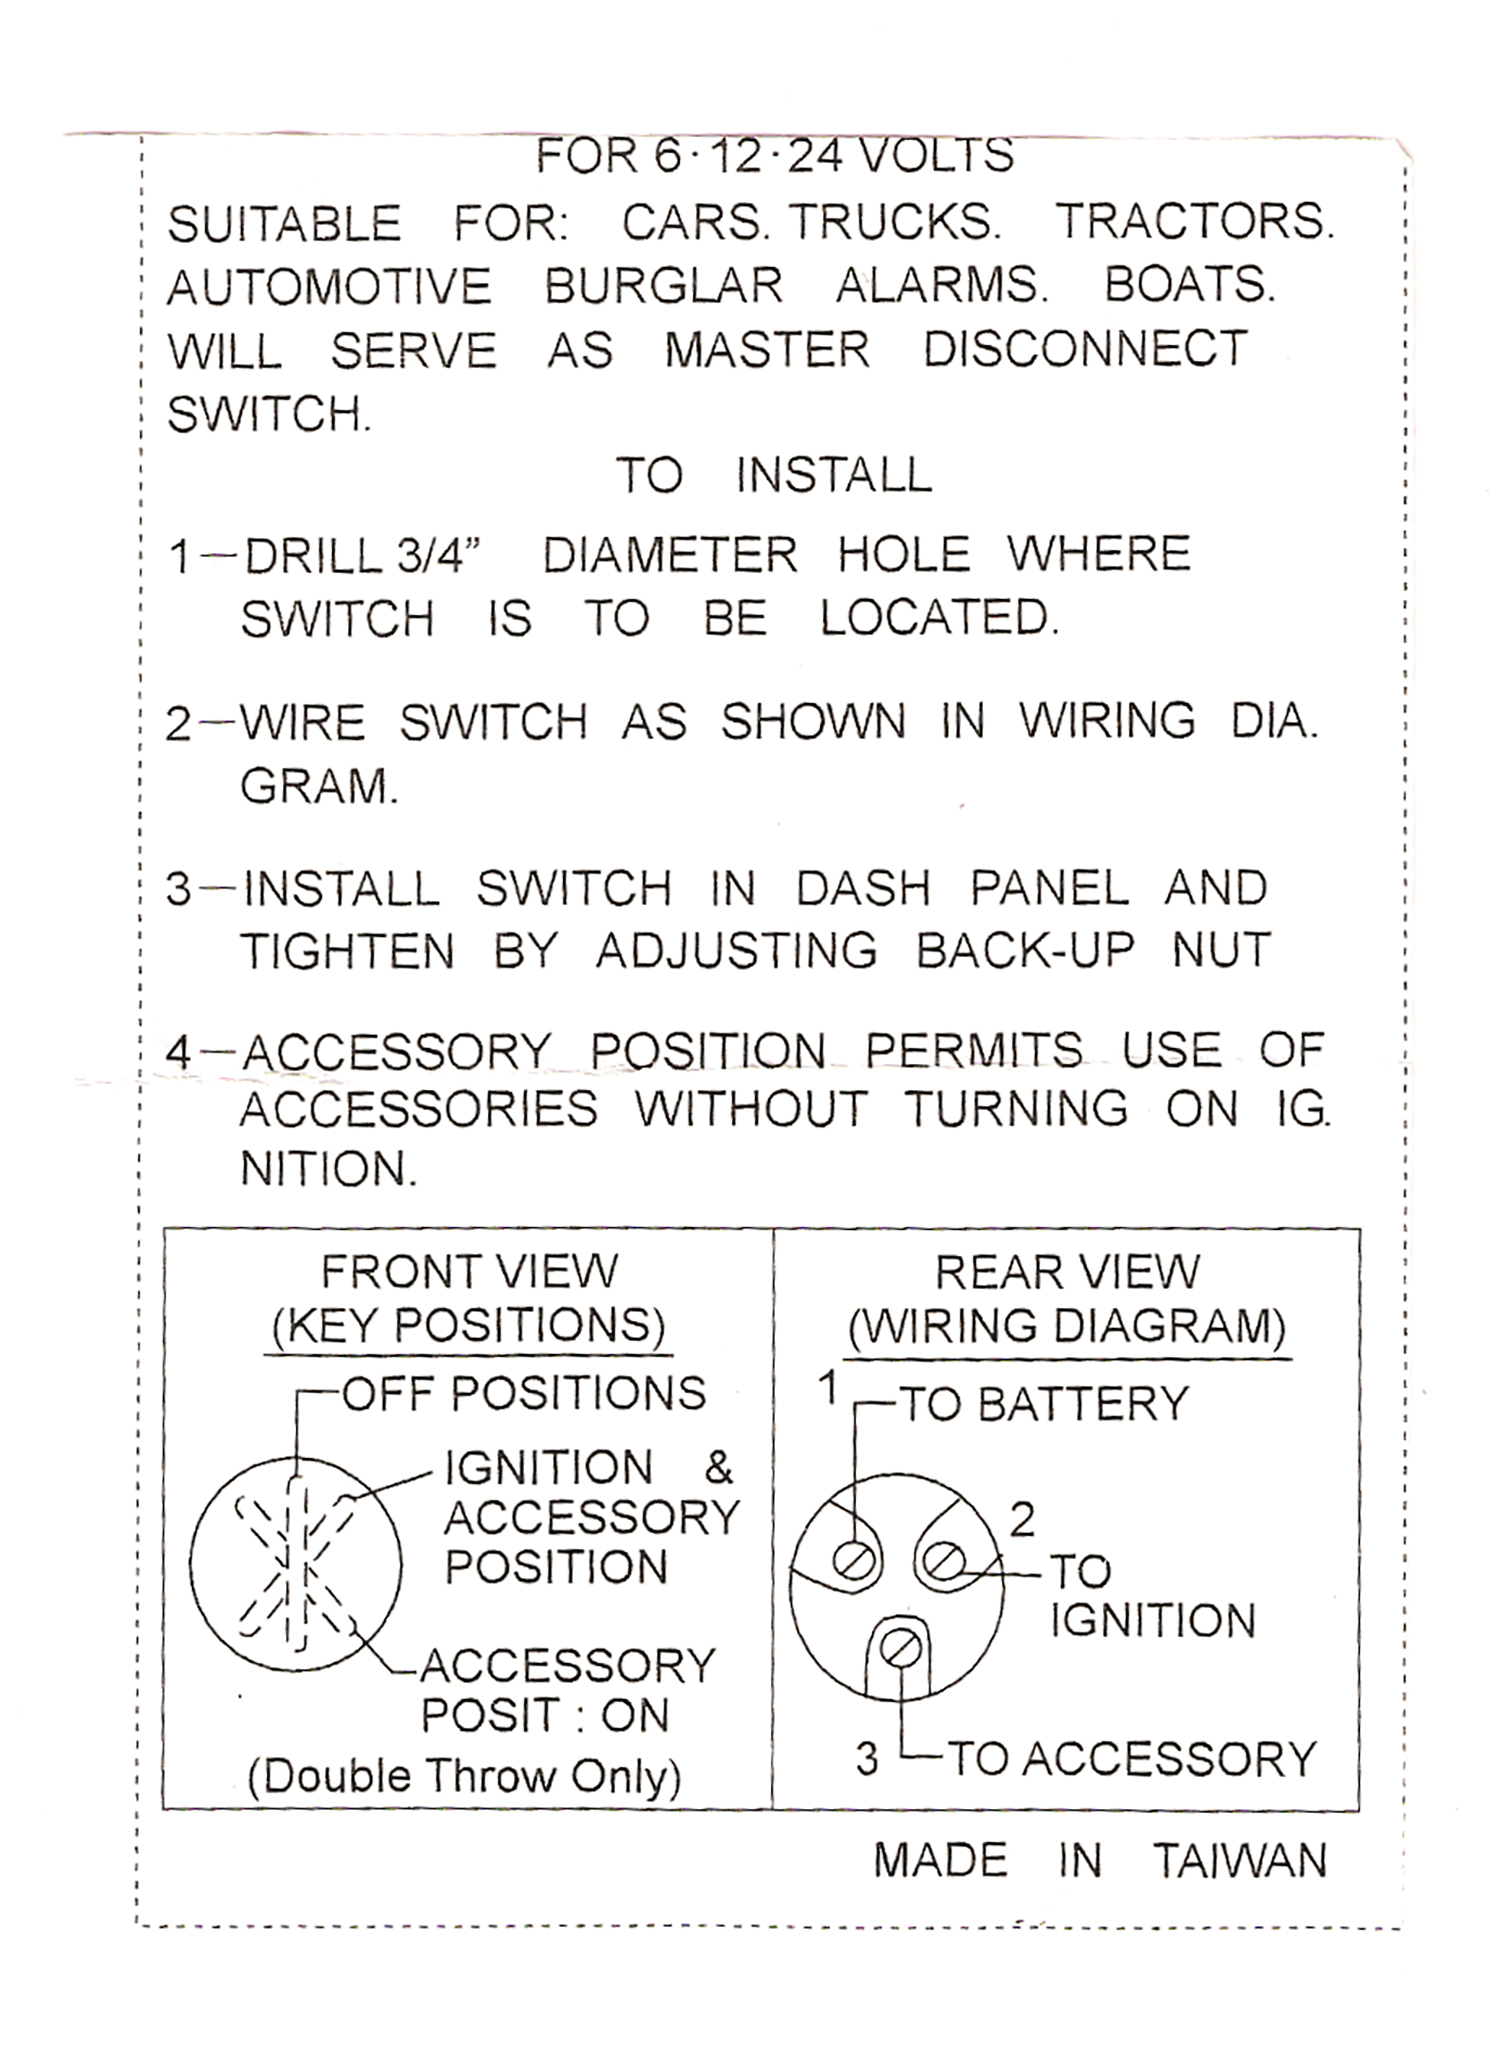 Schematic Wiring Diagram Pin Out Emgo Universal Position Key Switch Ignition on 3497644 Ignition Switch Wiring Diagram